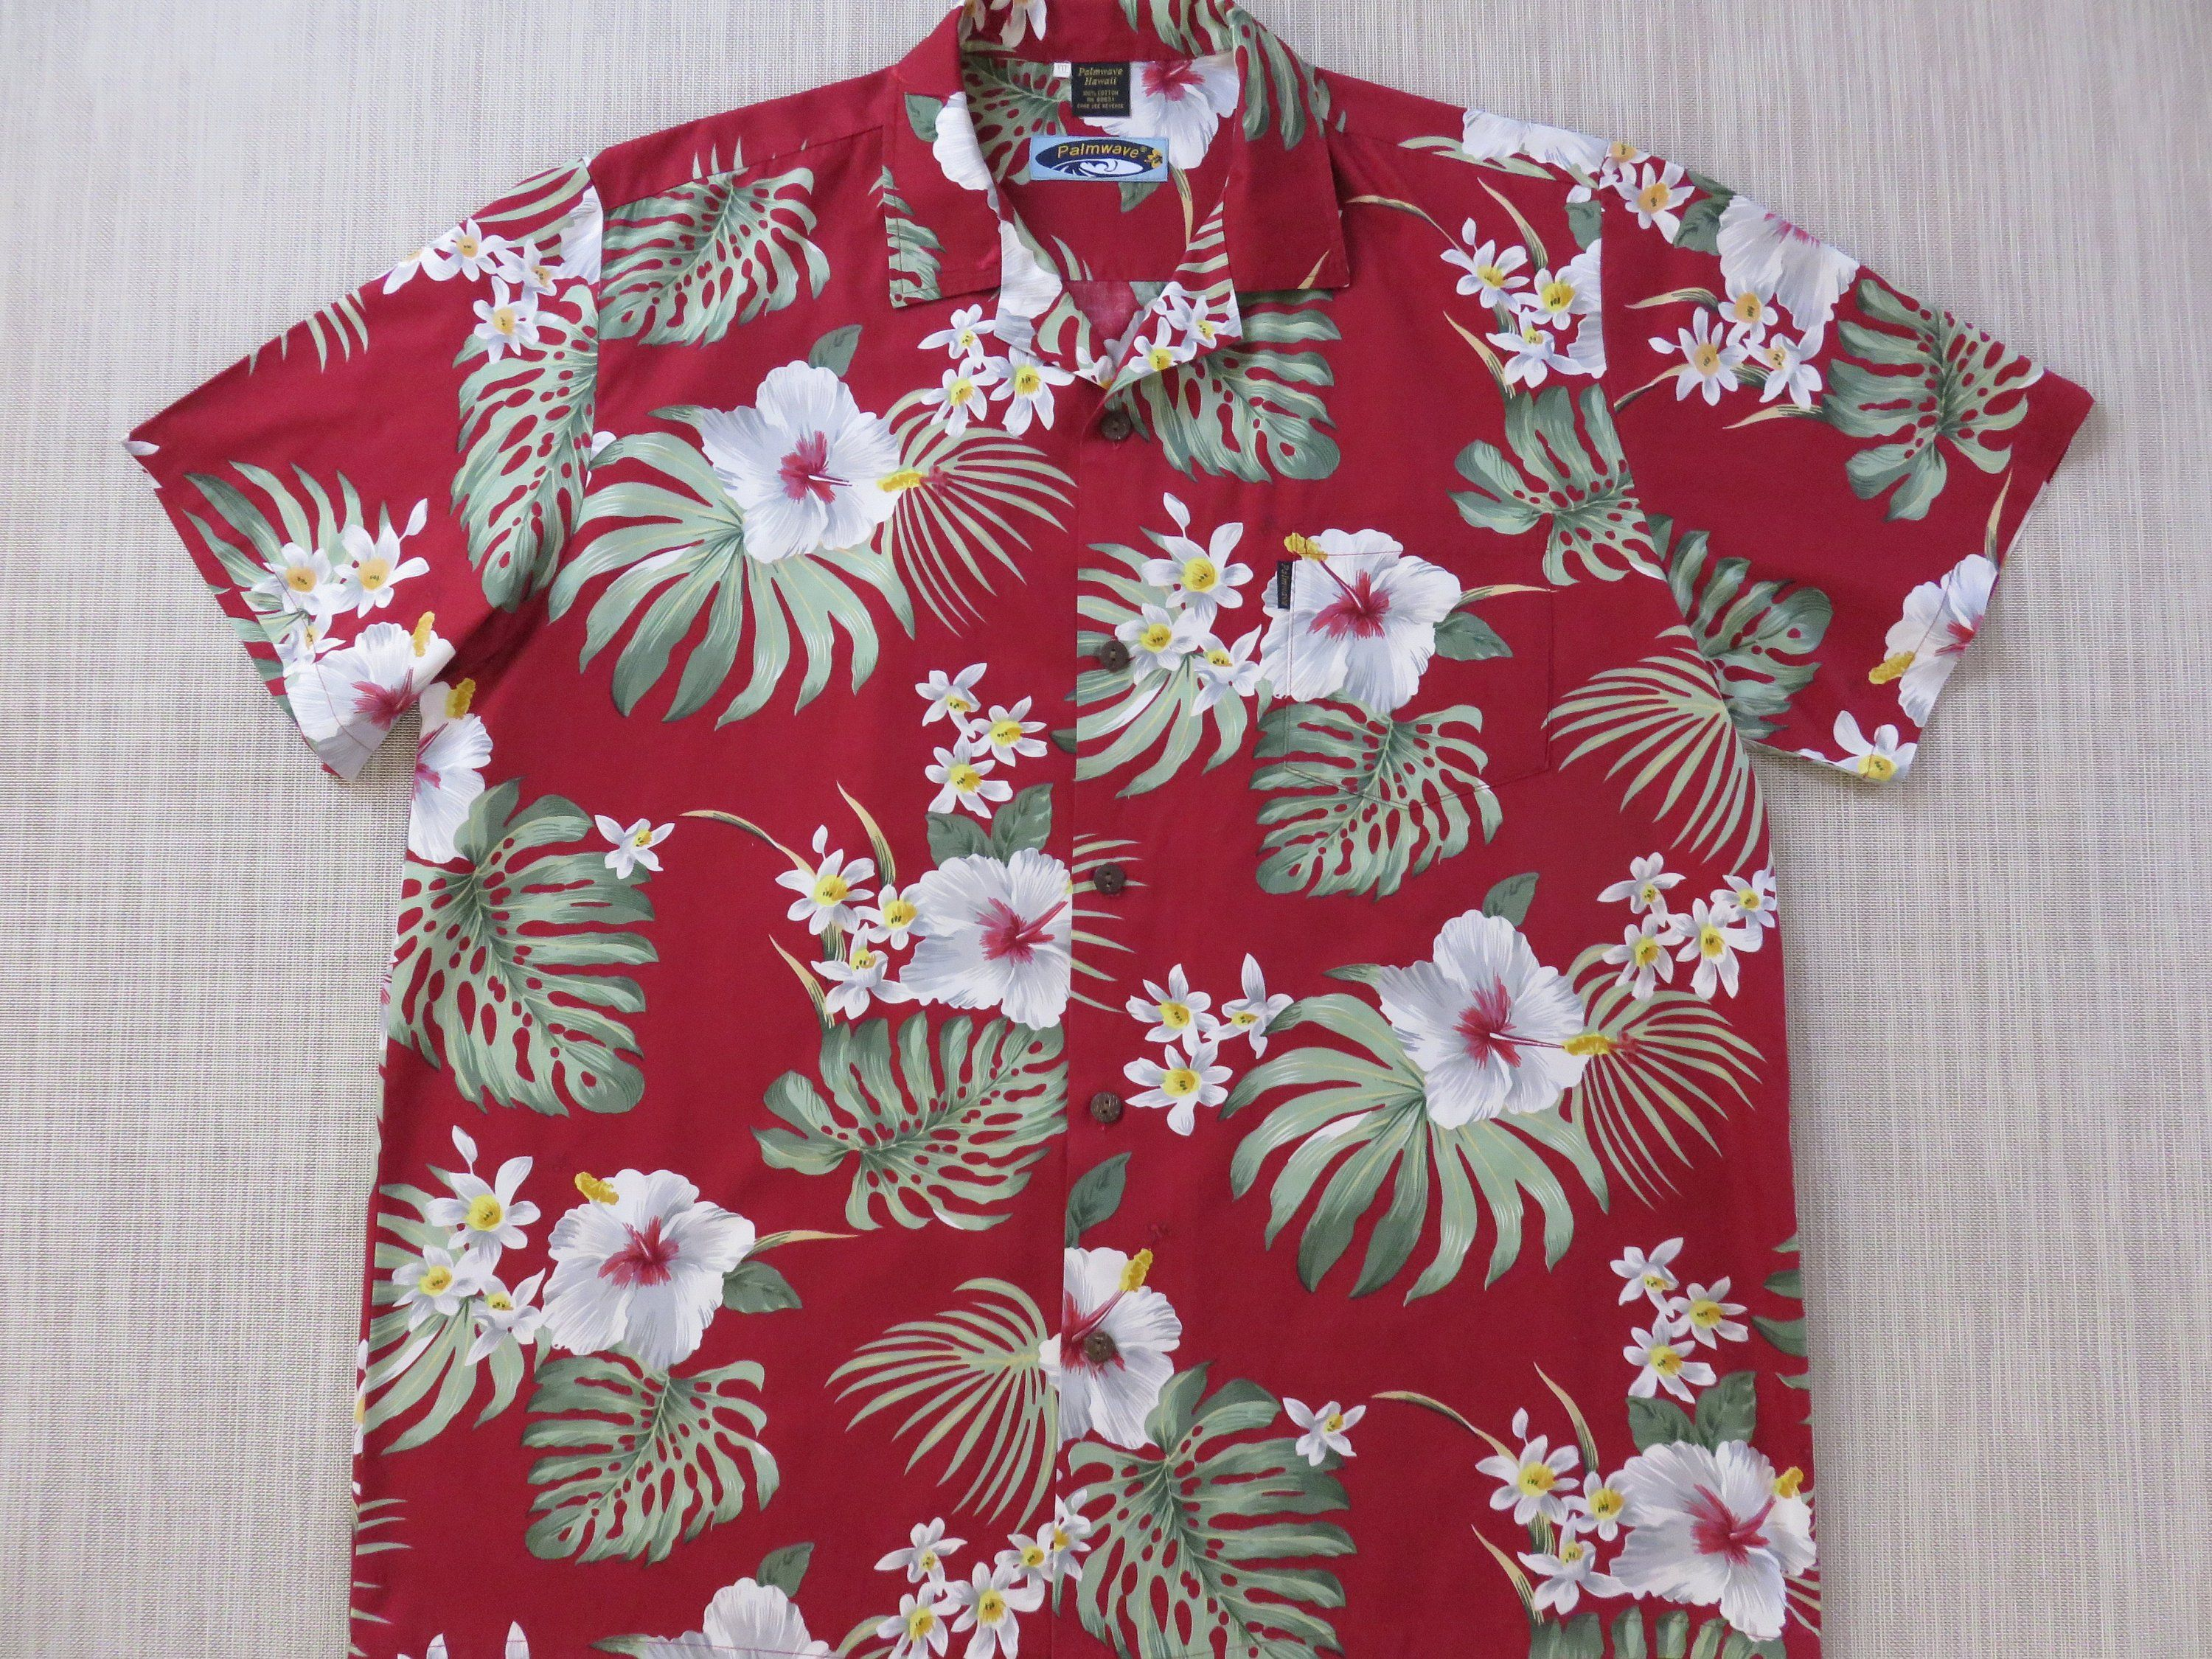 81e7d3e9 Mens Hawaiian Shirt PALMWAVE Hawaii Rockin' Red Aloha Shirt Trippy Tropical  Hibiscus Print 100% Cotton Camp - 2XL - Oahu Lew's Shirt Shack